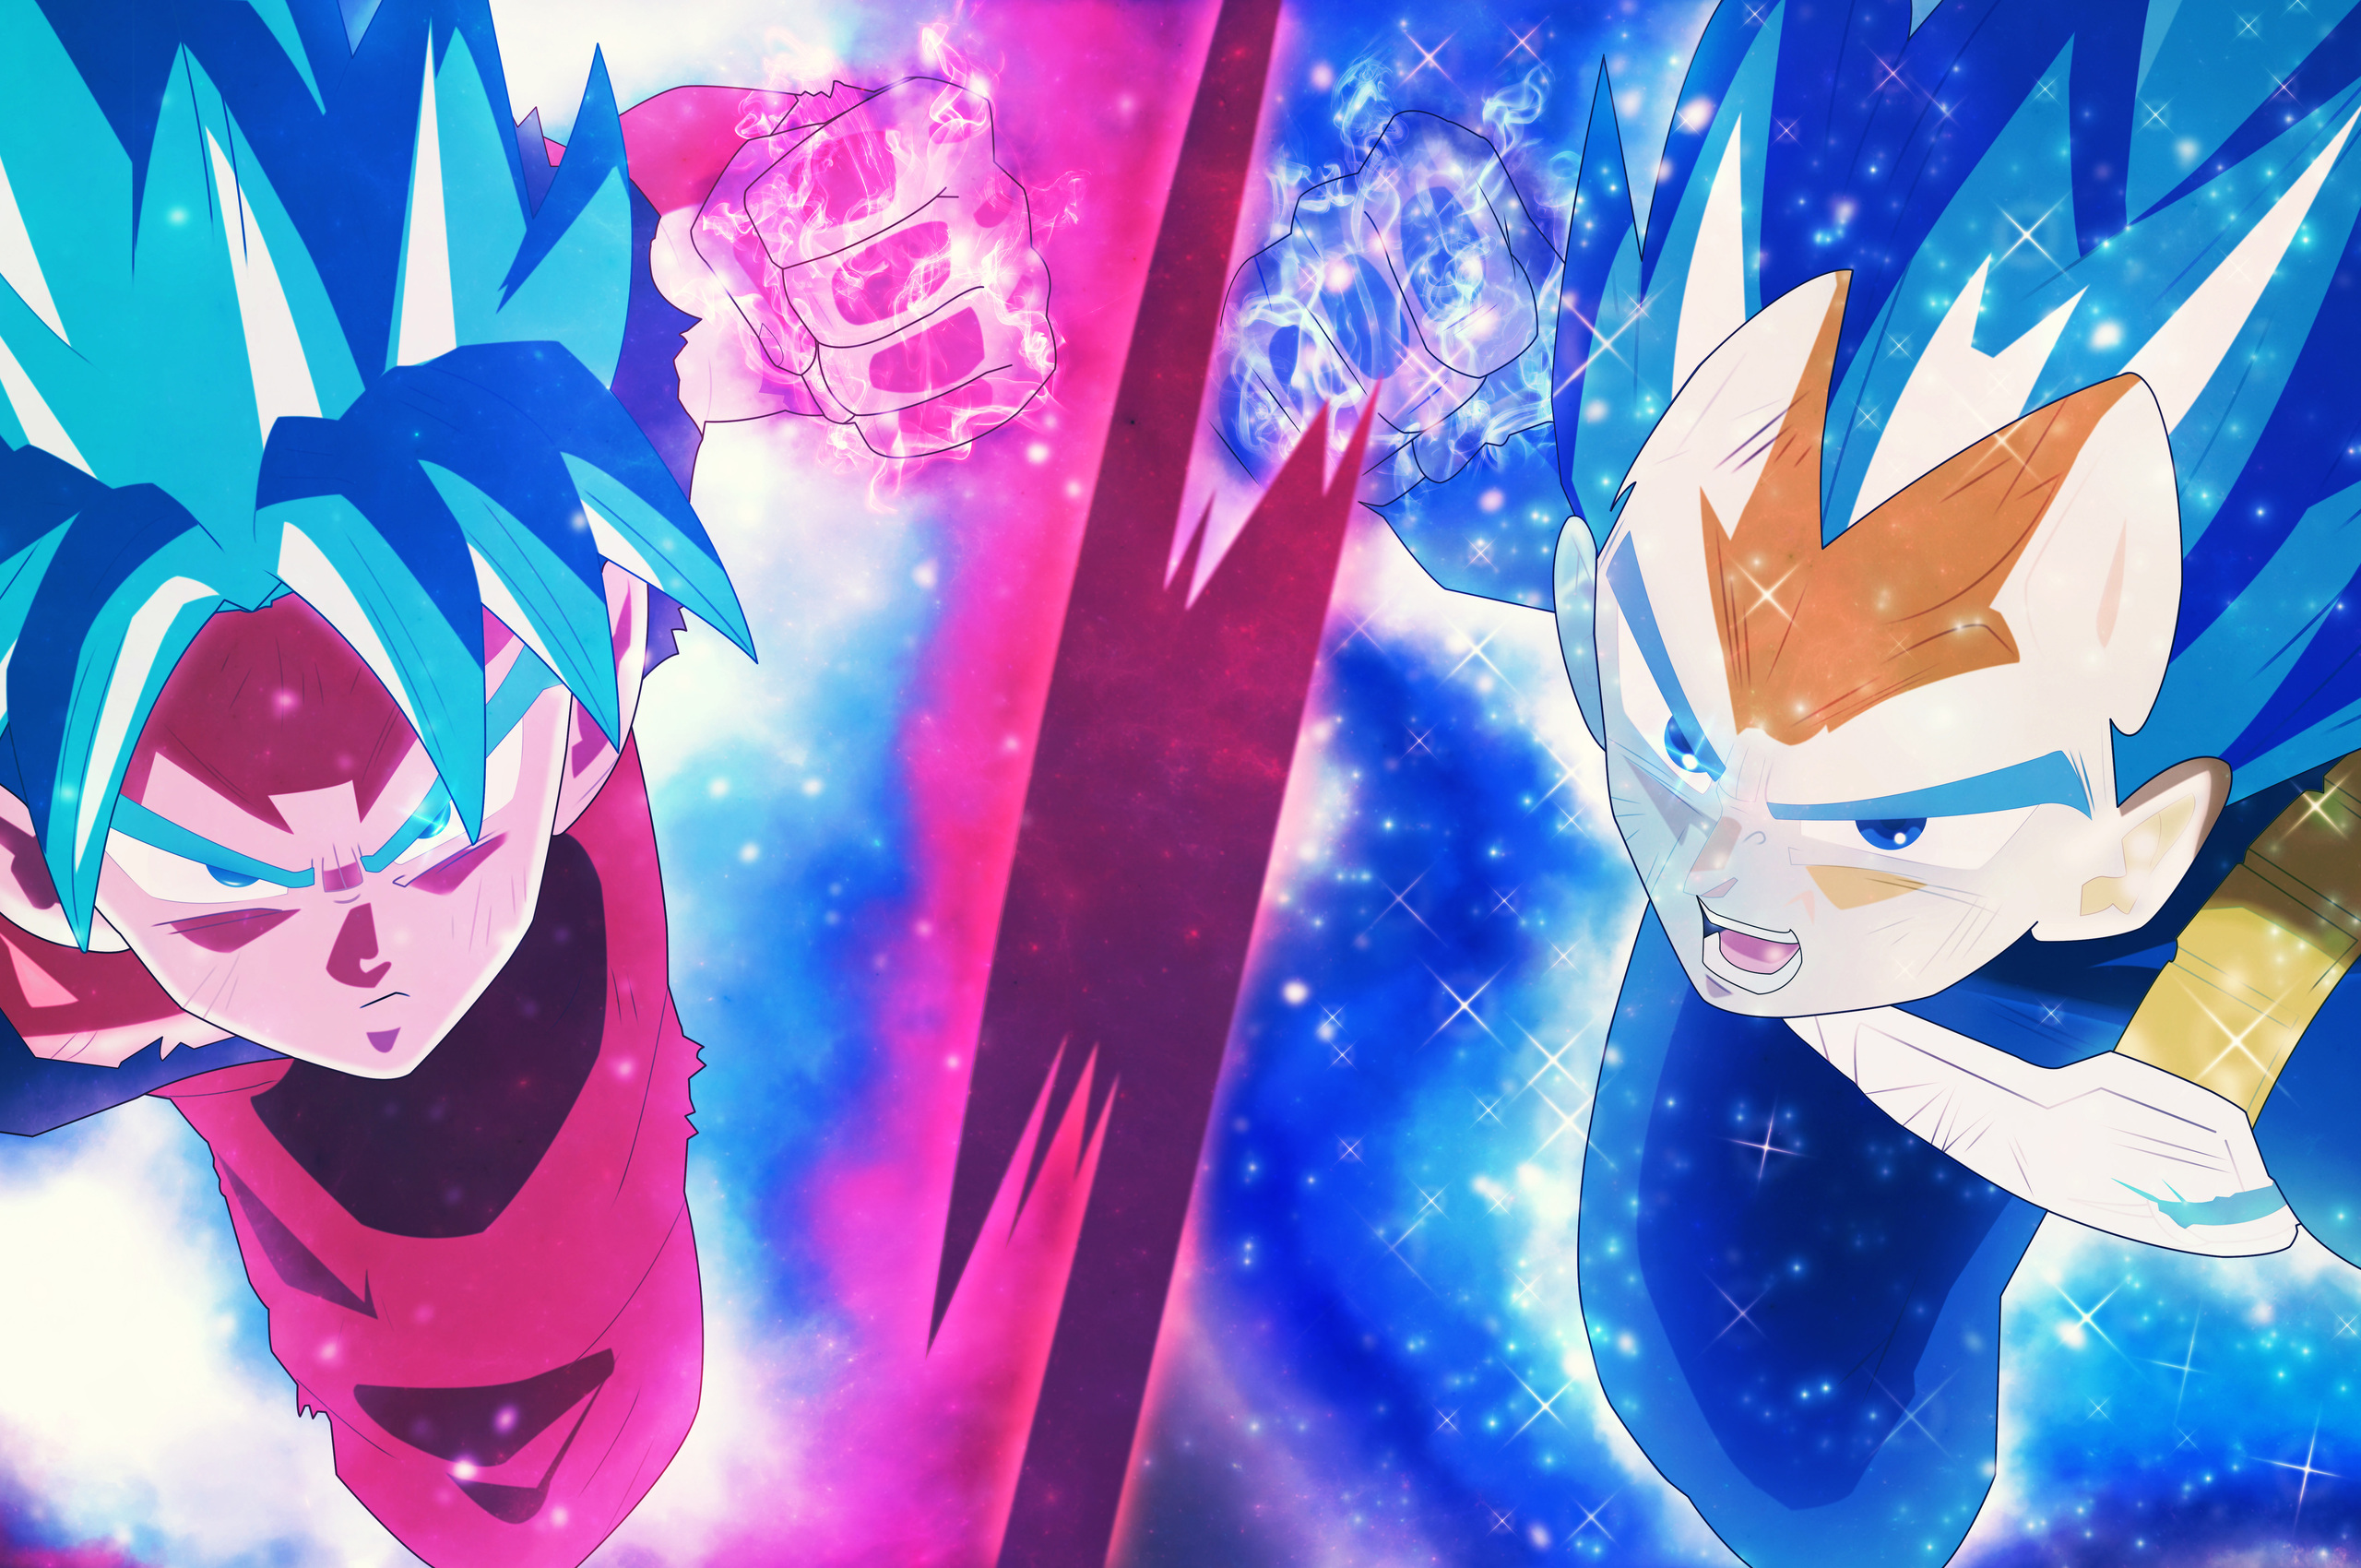 2560x1700 Dragon Ball Super Super Saiyan Blue 8k Chromebook Pixel Hd 4k Wallpapers Images Backgrounds Photos And Pictures